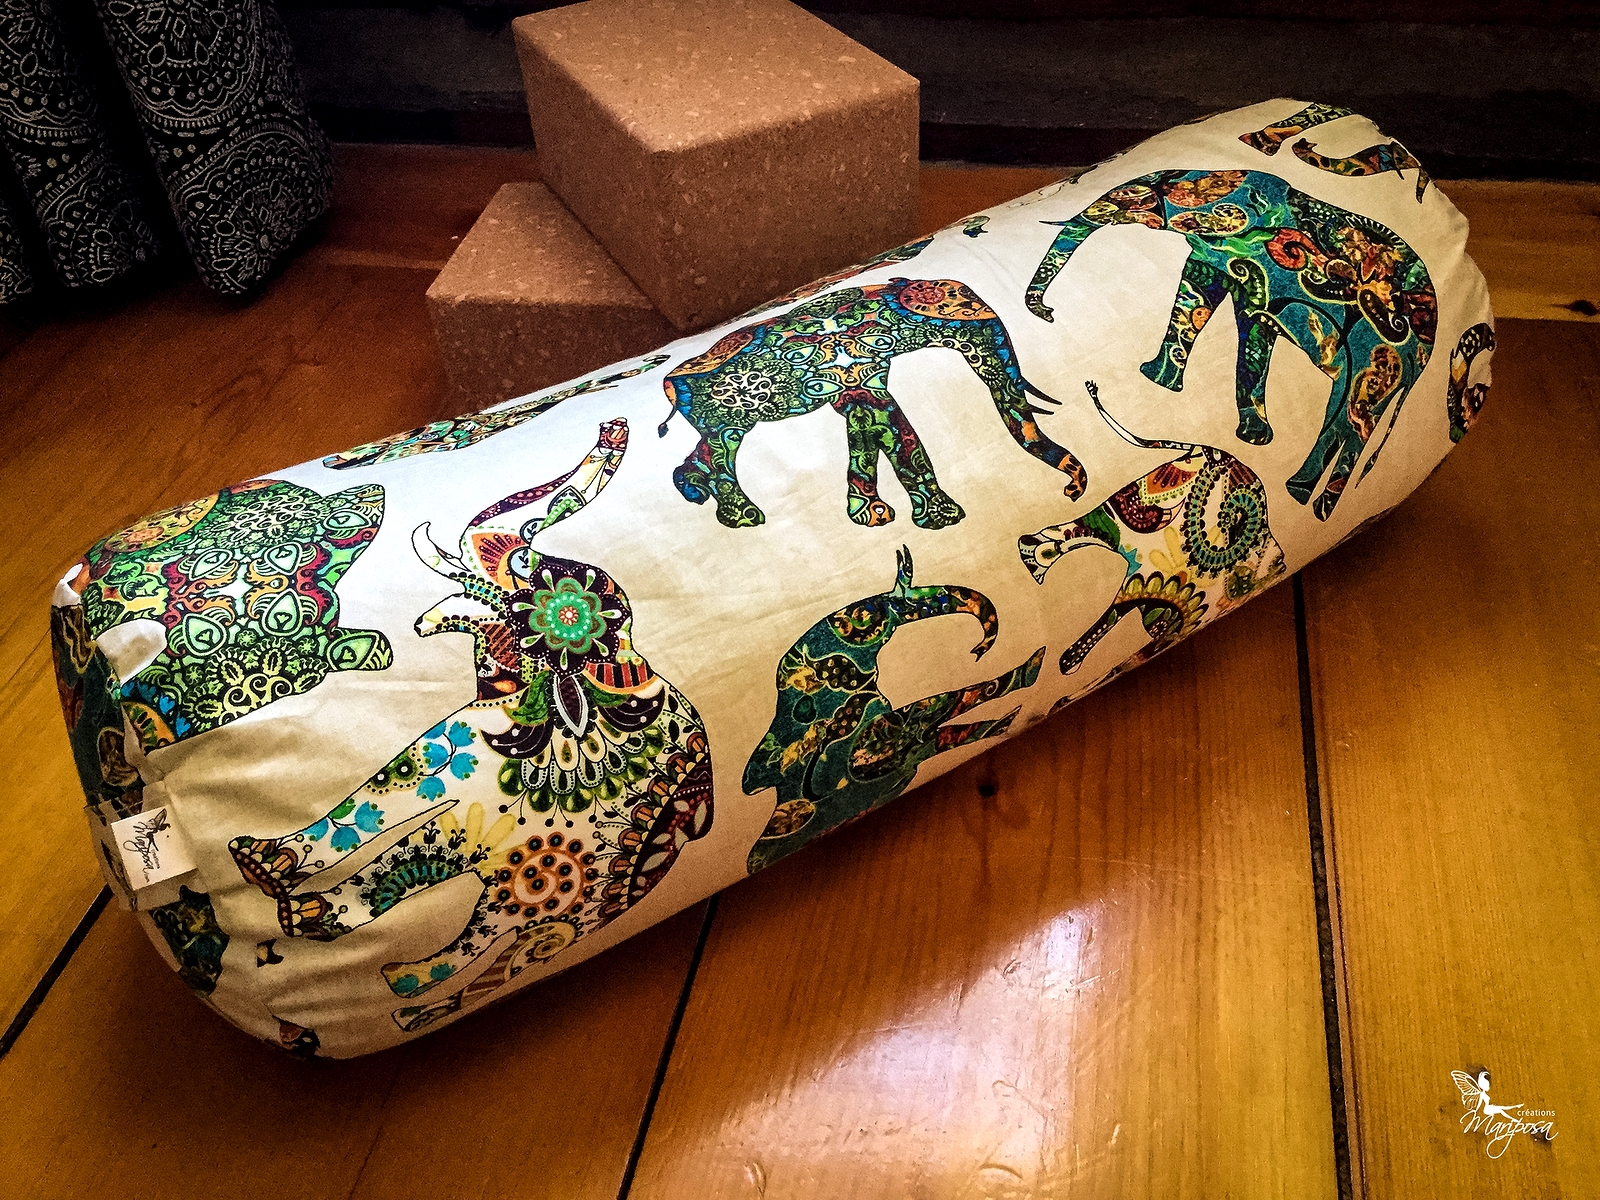 bolster poses restorative right for or sheilalabel which yoga flowing me sequences holding is style pillow of blog